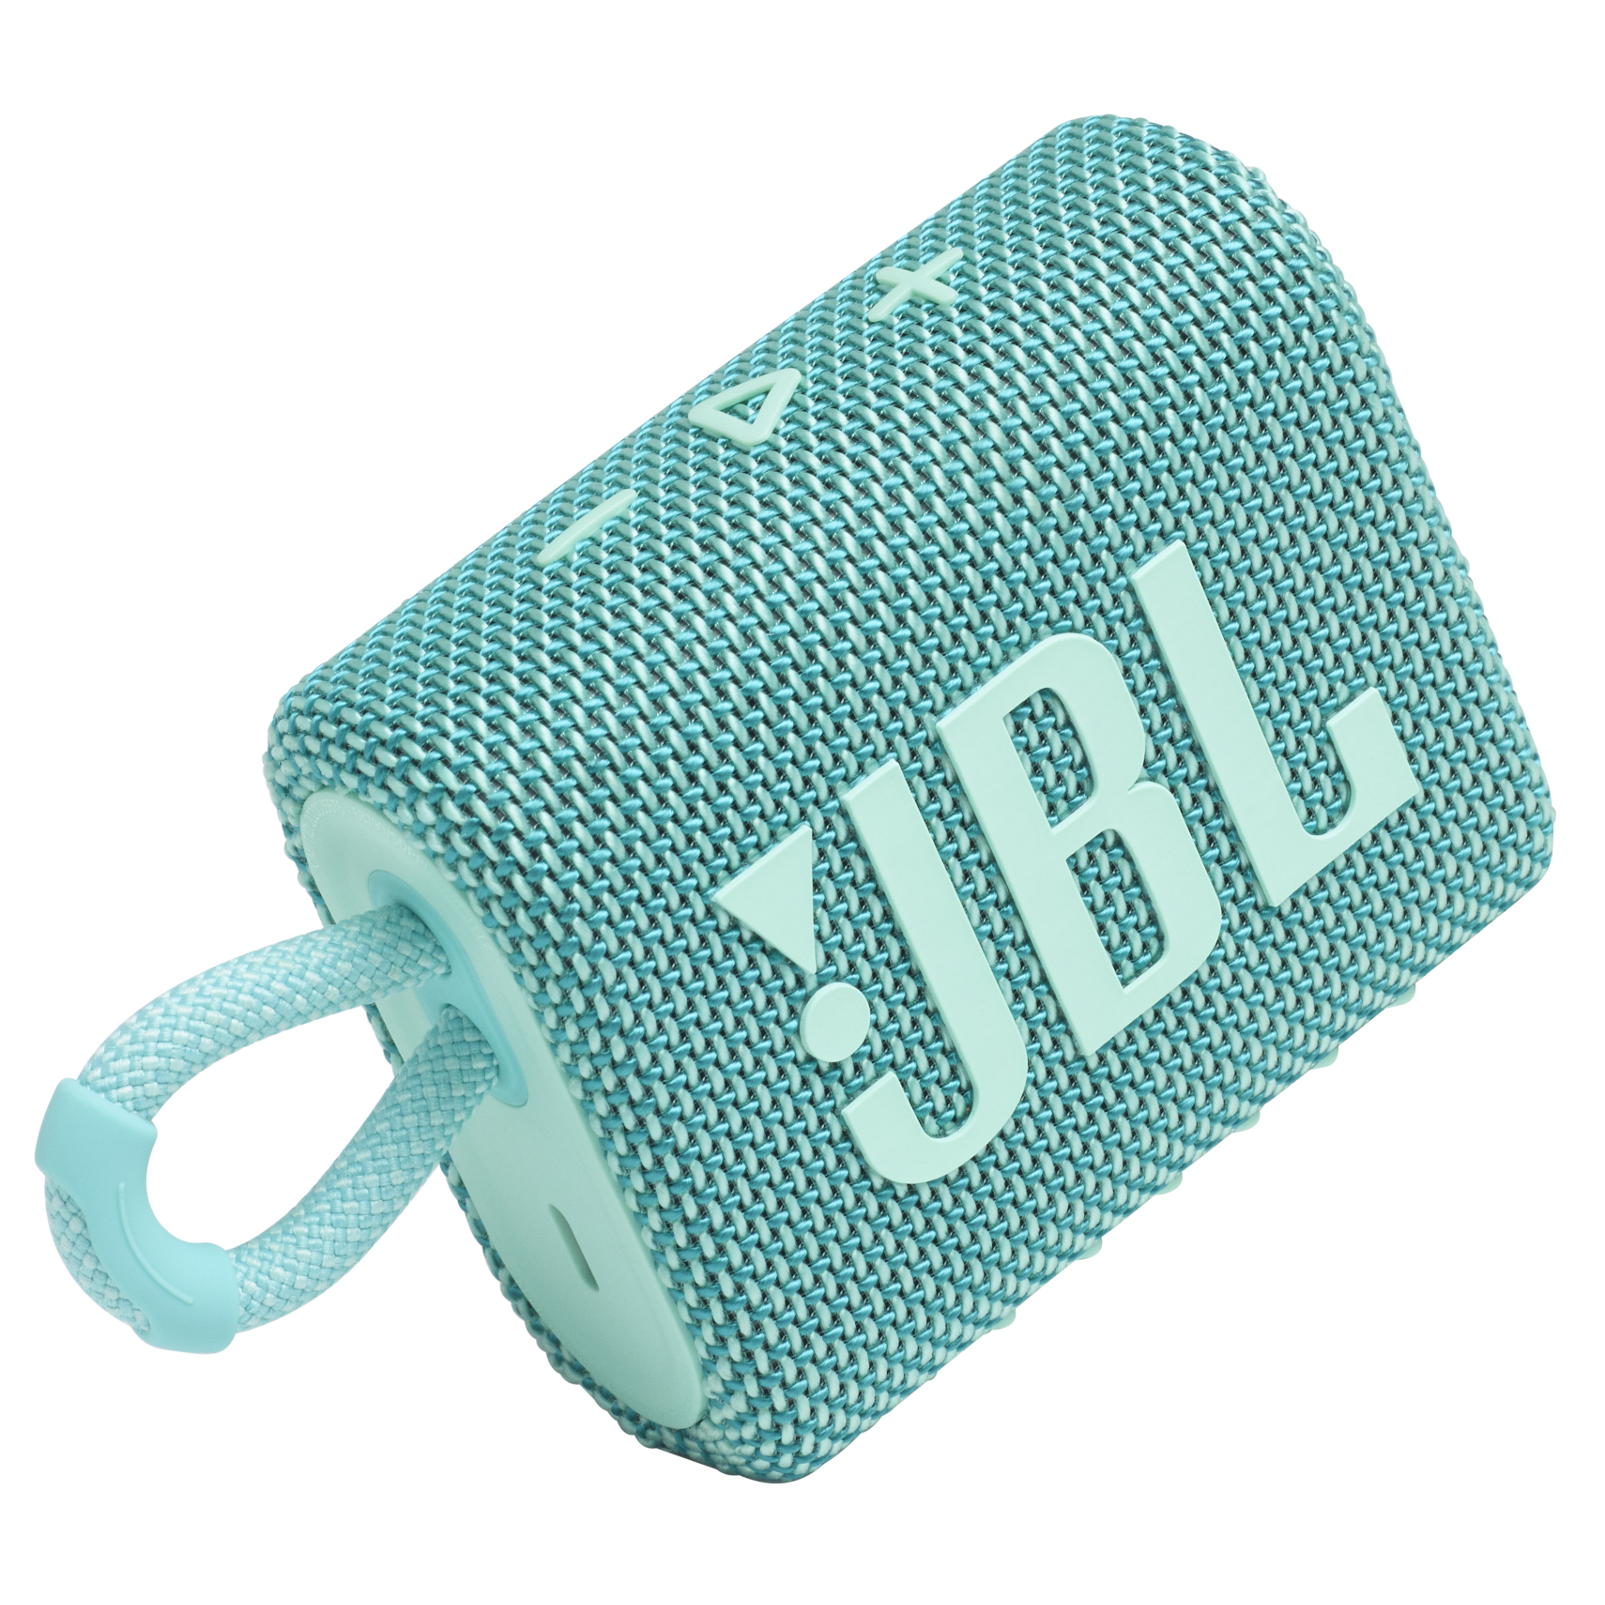 JBL GO 3 - Teal - Portable Waterproof Speaker - Detailshot 1